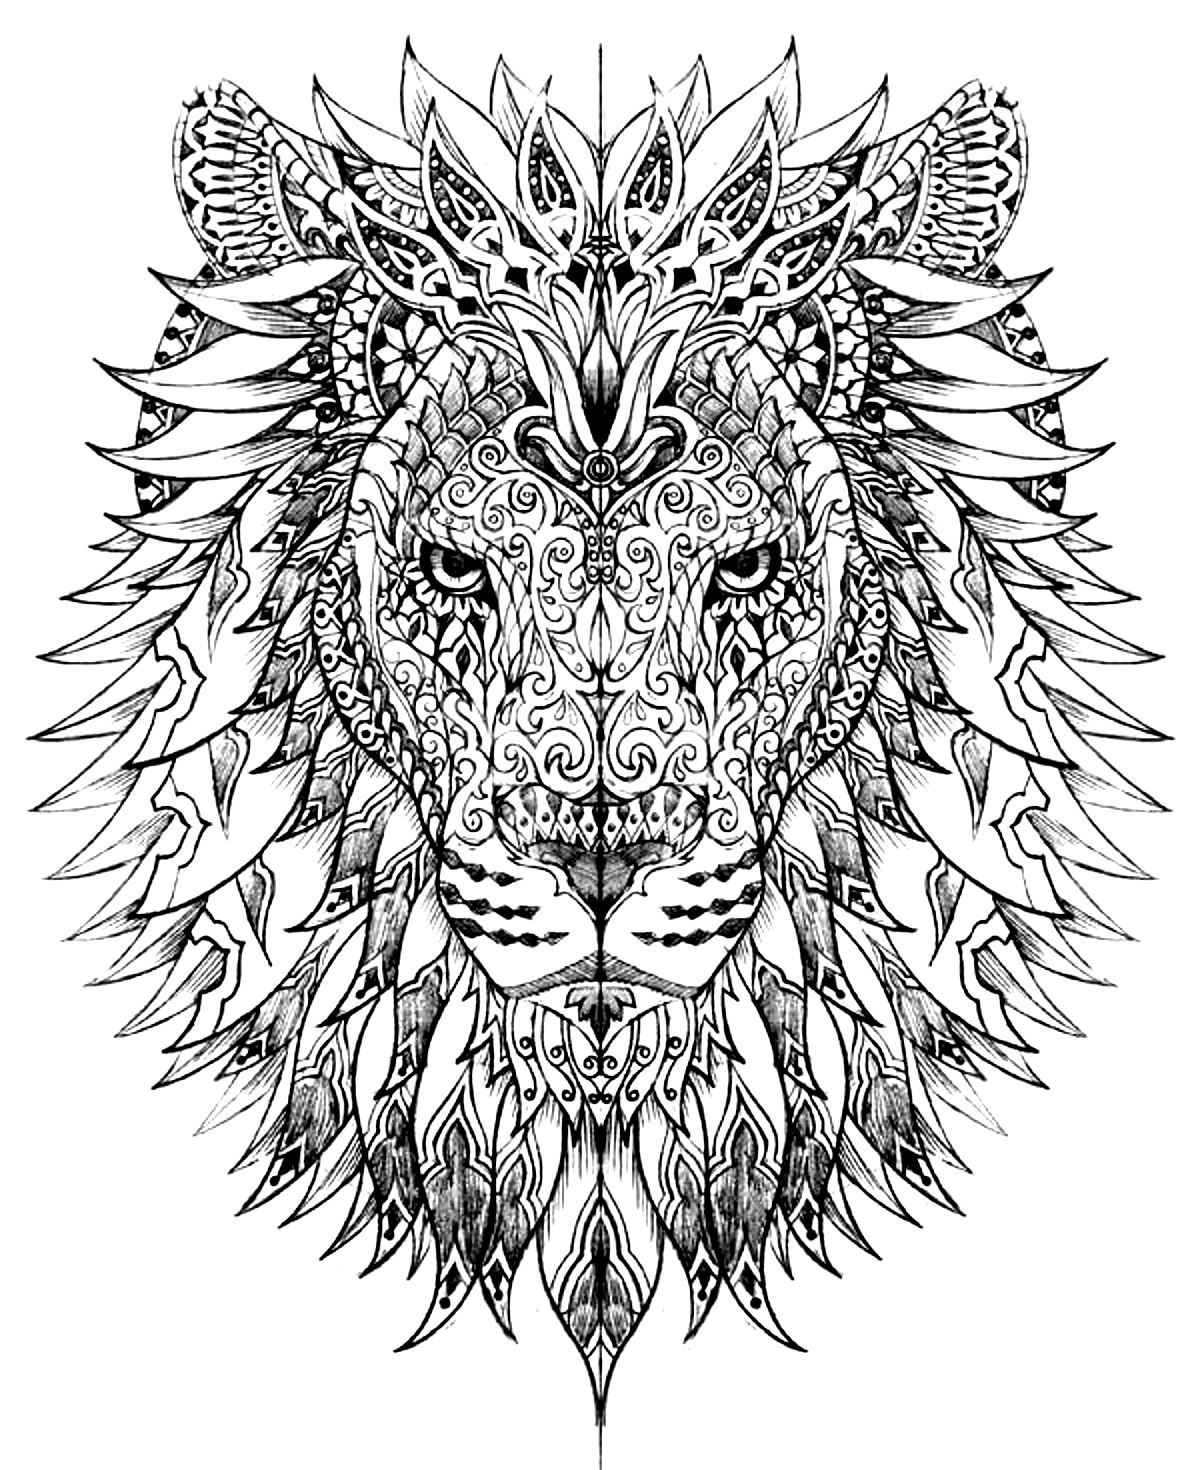 Coloring pages lion - Lion Head Drawn With Very Smart And Harmonious Patternsfrom The Gallery Animals